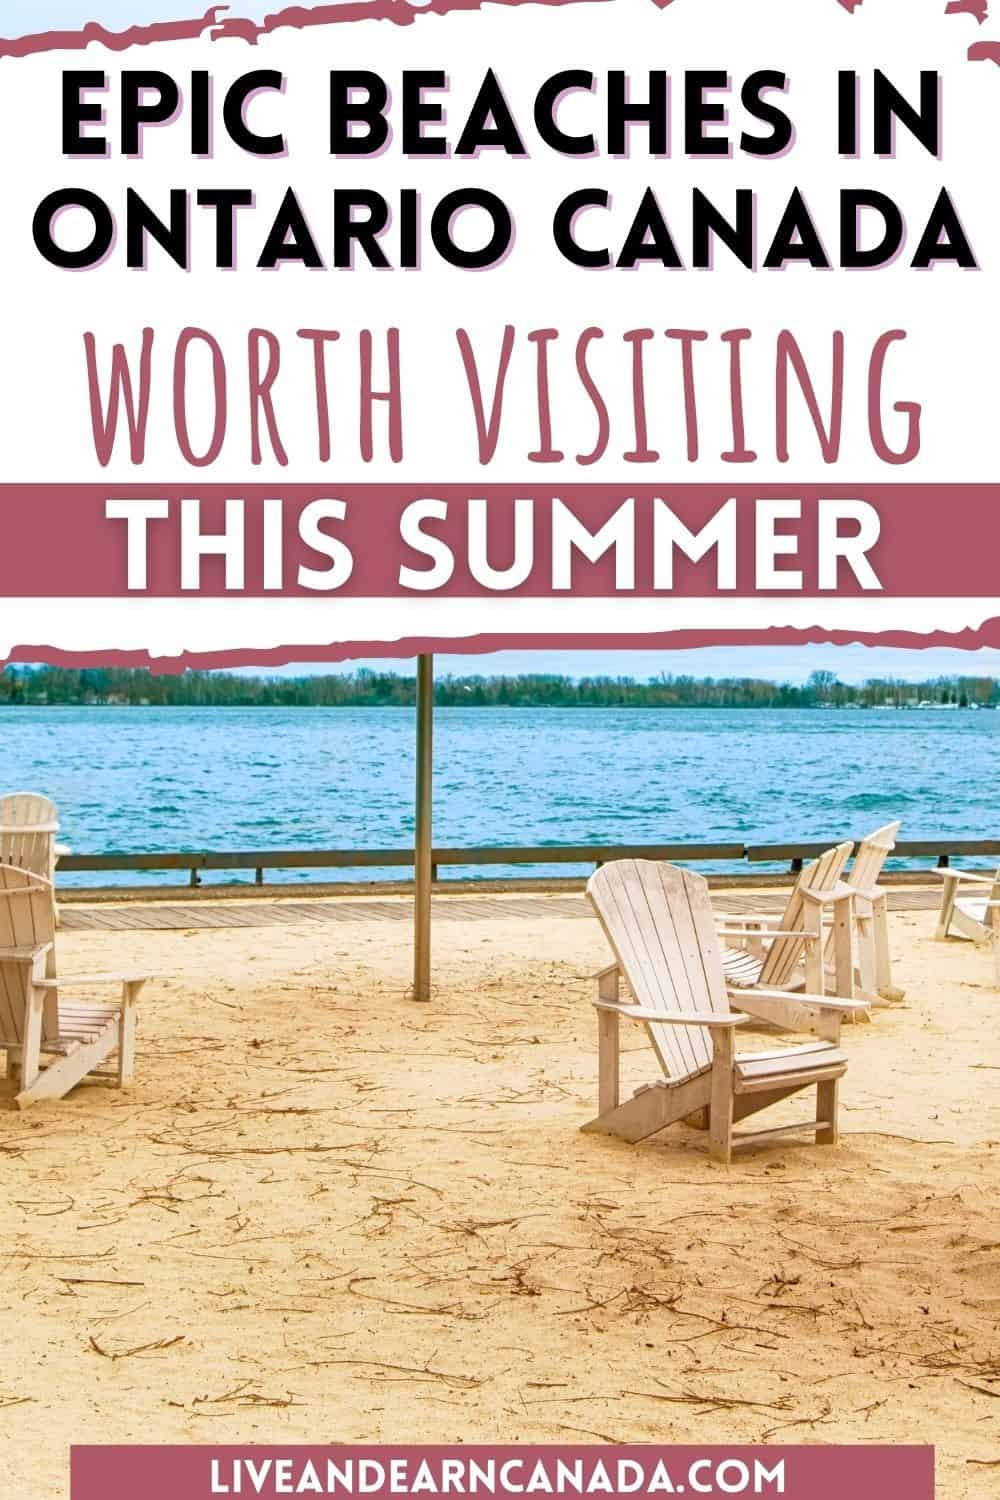 15 Best Beaches in Ontario! Ontario, Canada has beautiful freshwater beaches across the province. These 15 best beaches in Ontario are sandy beaches on gorgeous lakes. Take a day trip from Toronto to Sauble Beach or explore Sandbanks Beach in Prince Edward County.